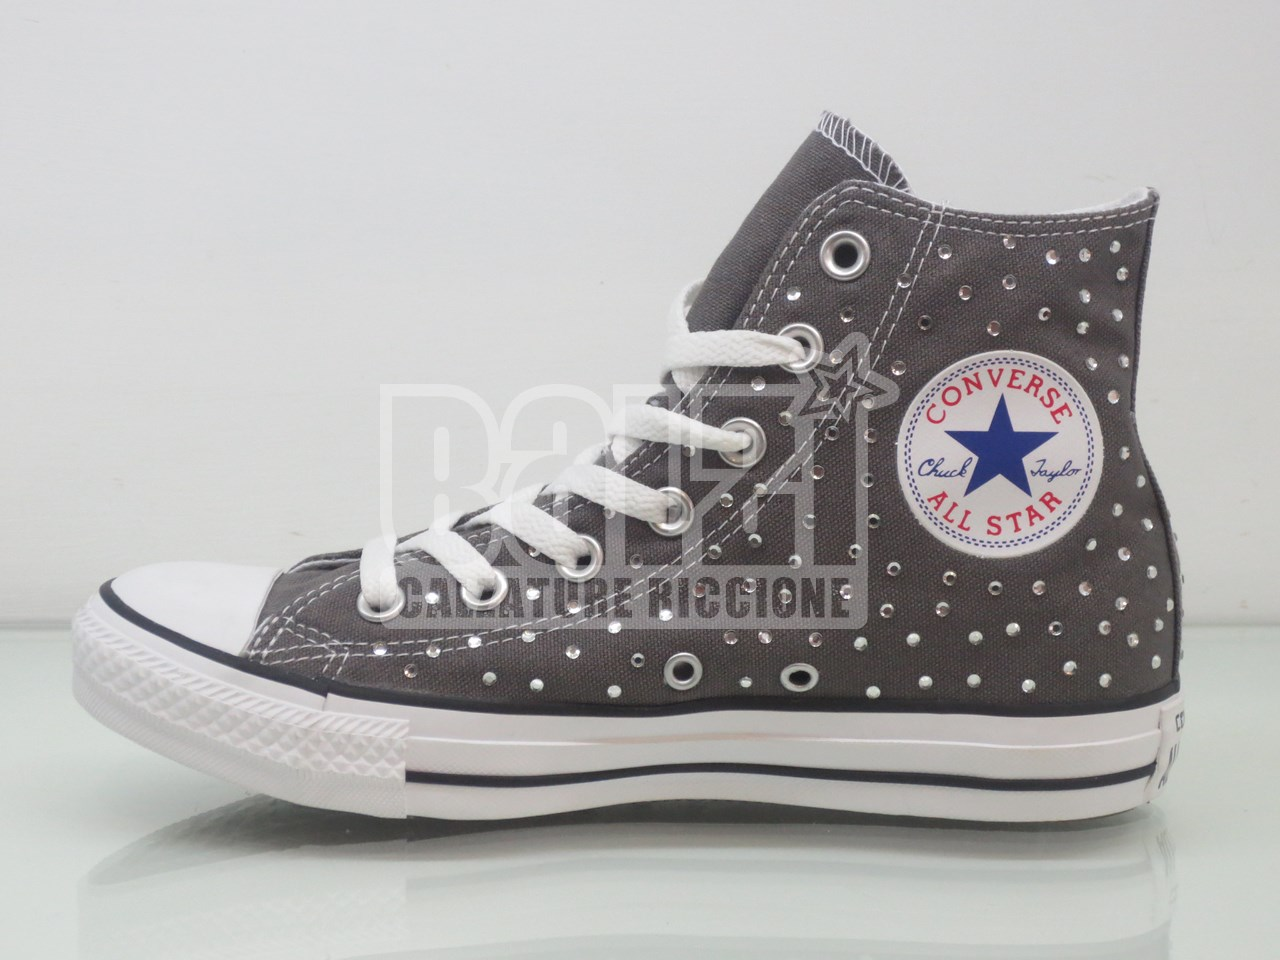 Acquista converse nere all star - OFF42% sconti 02c084f4809